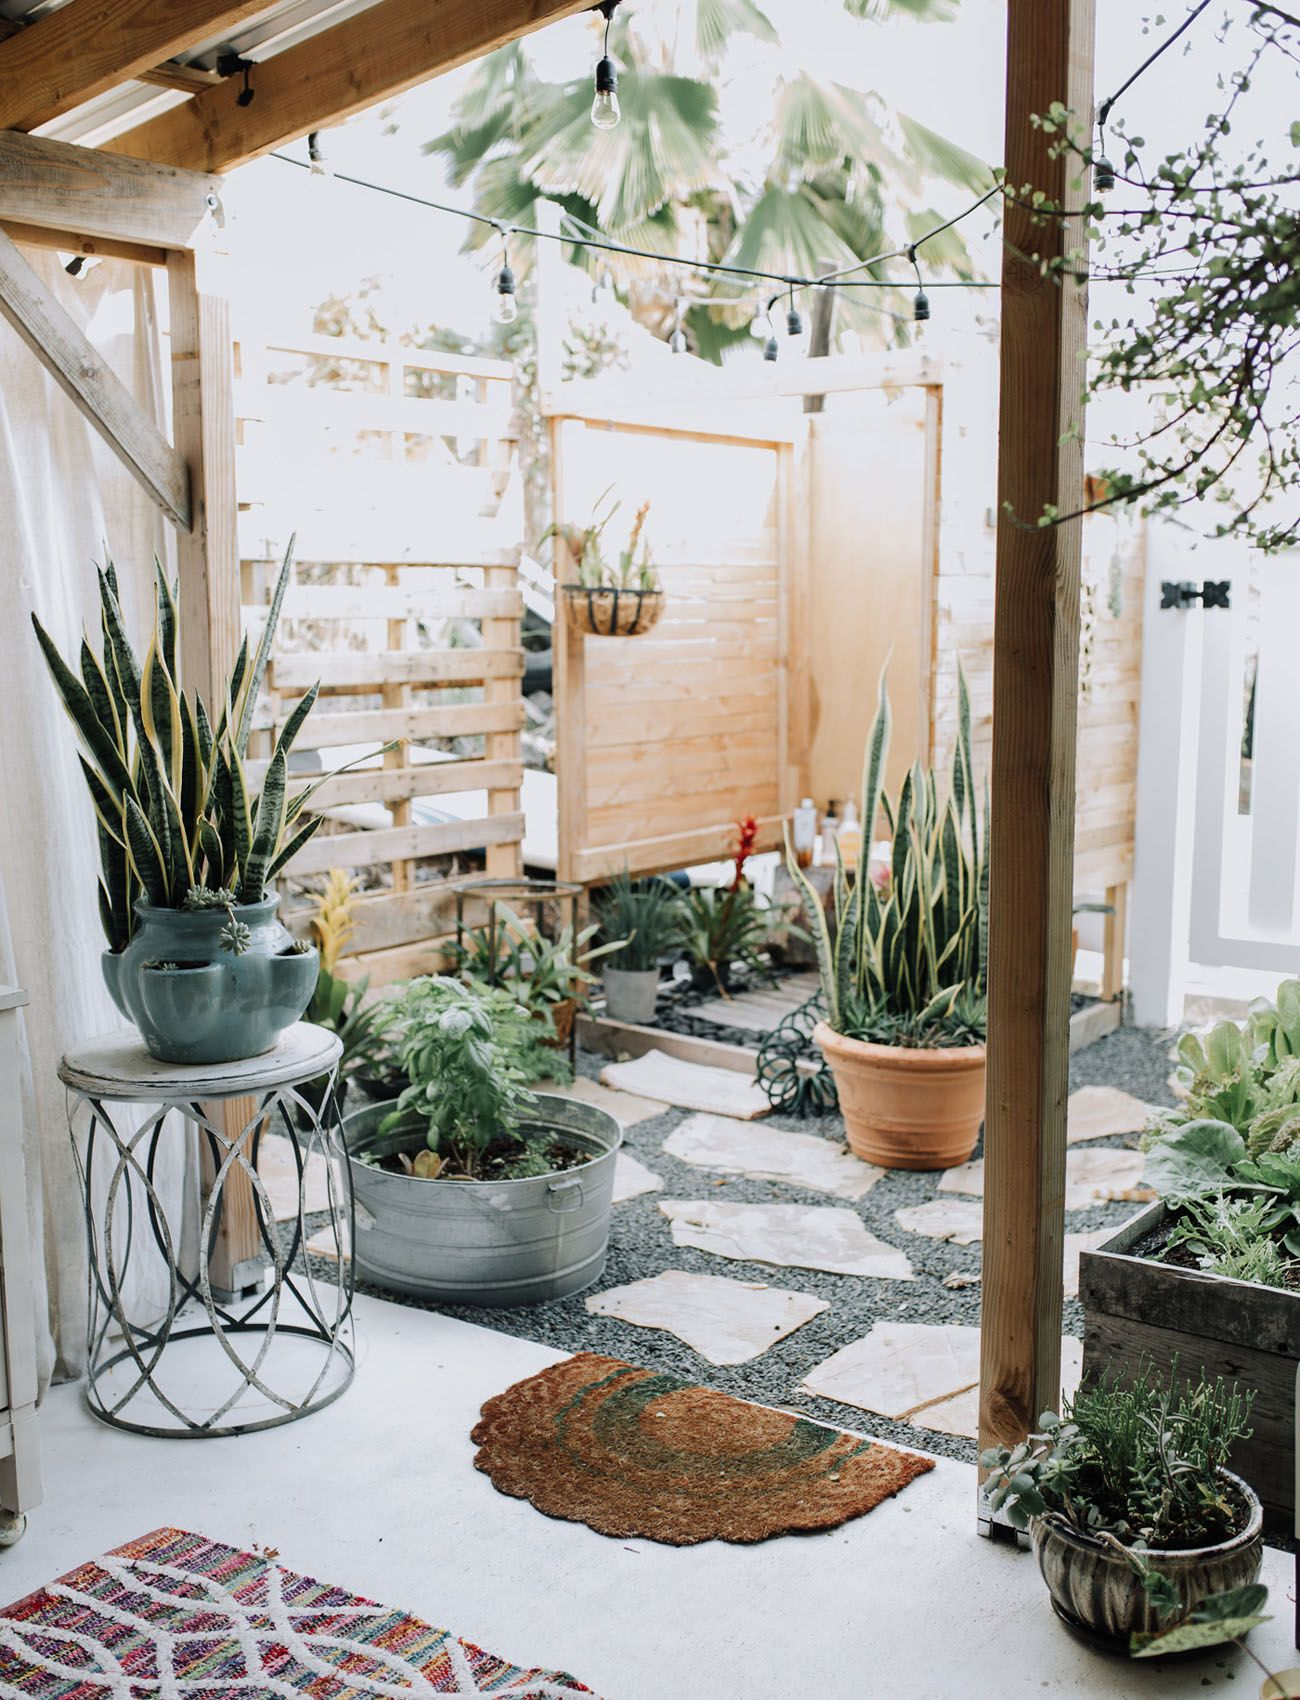 Home Tour: The Local Nook A Cozy Hawaiian Hale | Green Wedding Shoes